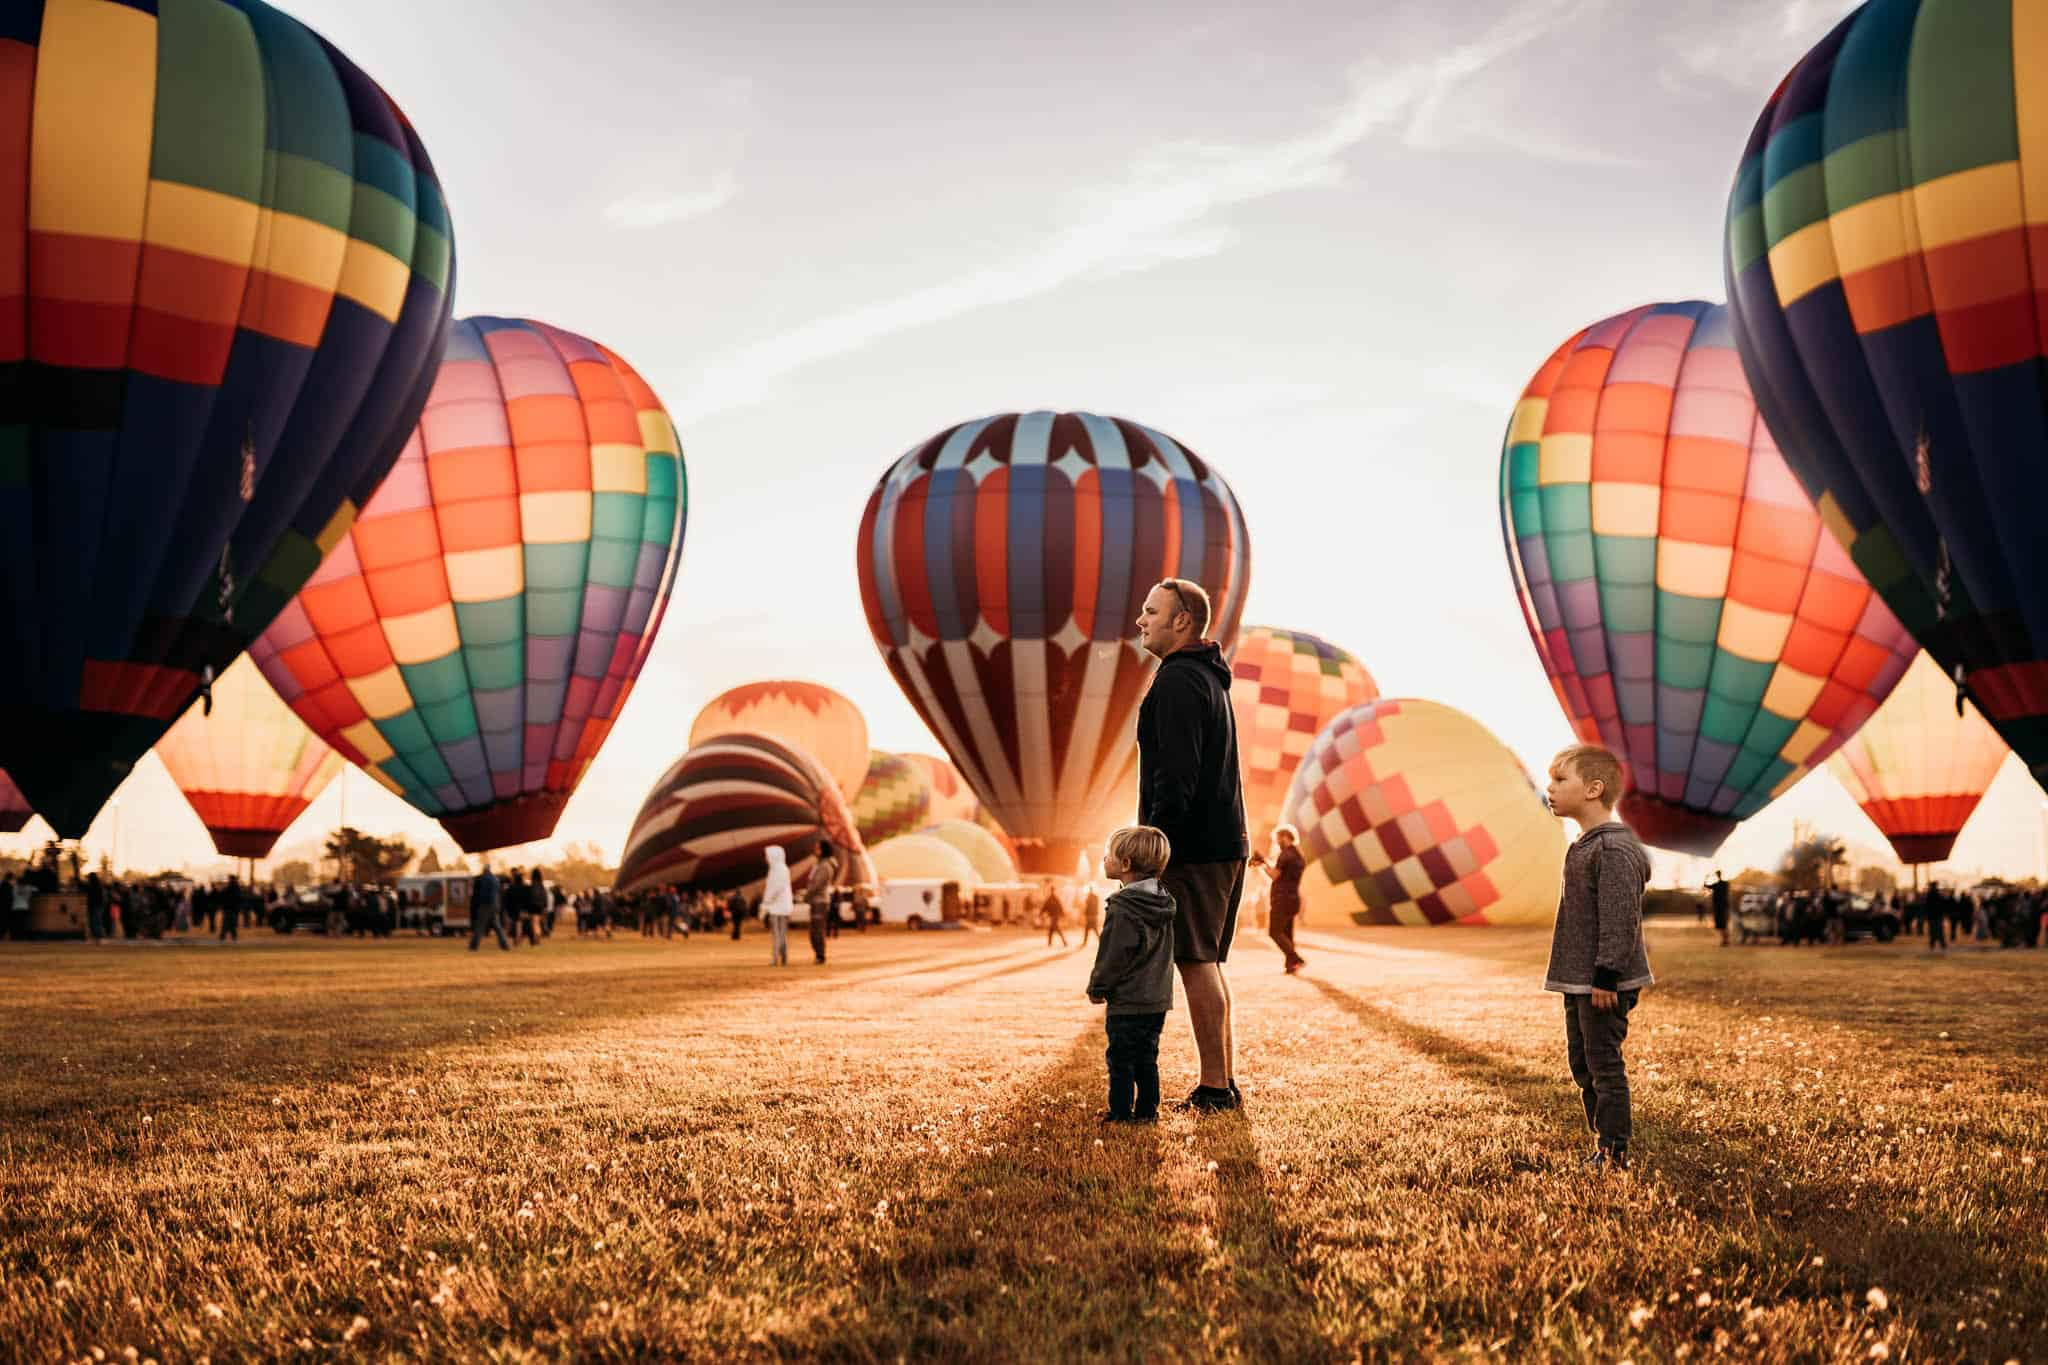 A father and his two sons are standing in the middle of a hot air ballon starting point